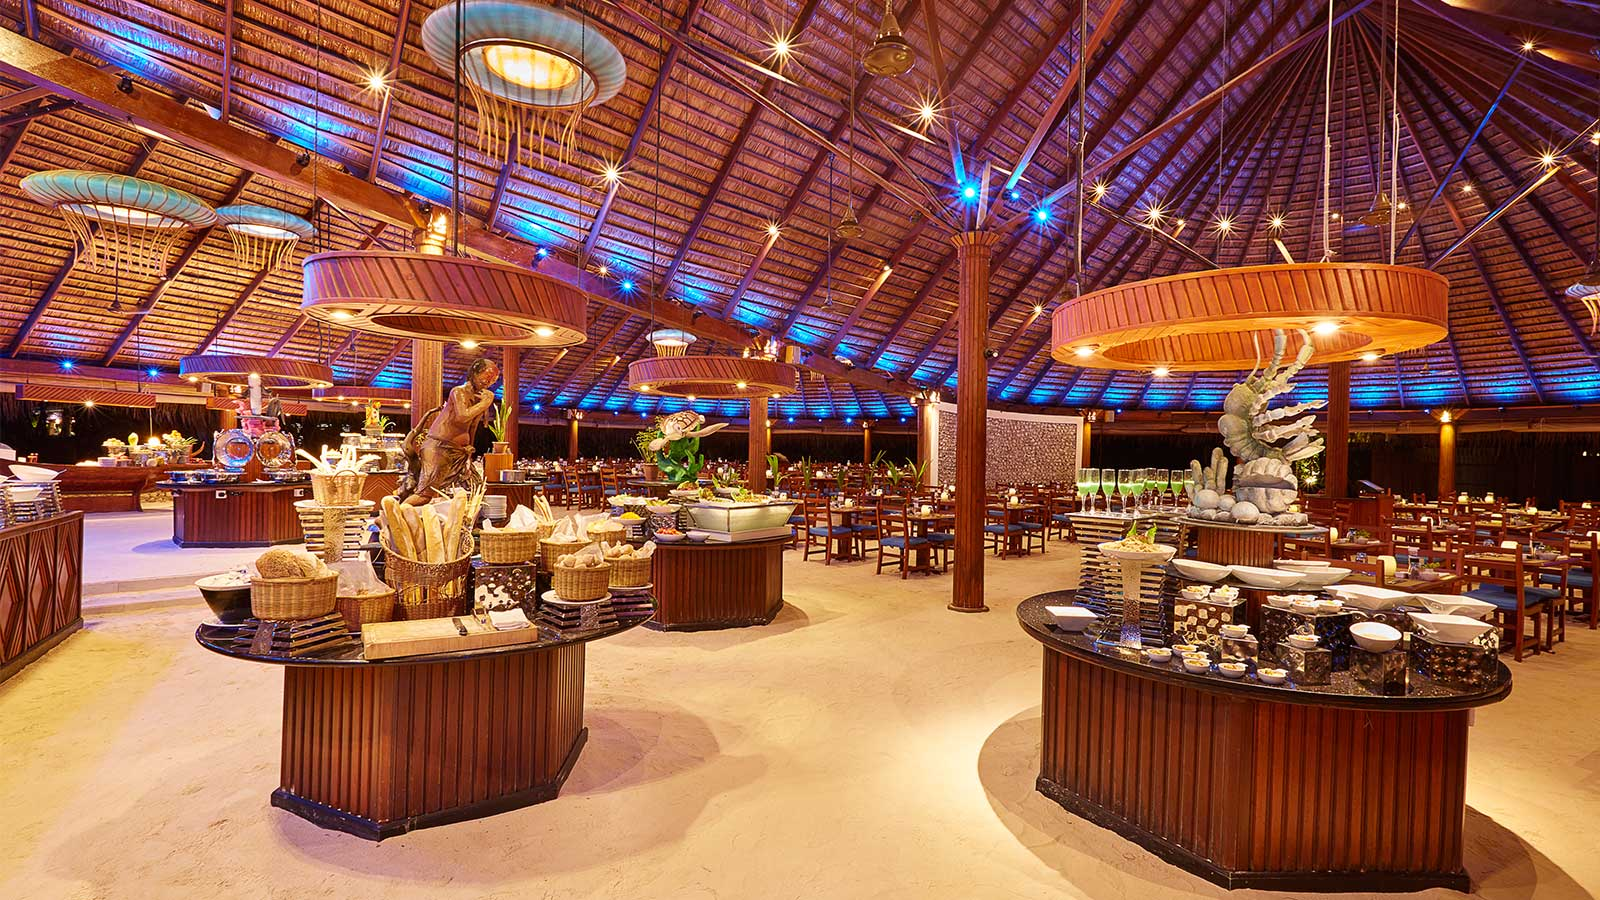 Buffet Cuisine Design Introducing Amazing Kuredu 39s Buffet Restaurants